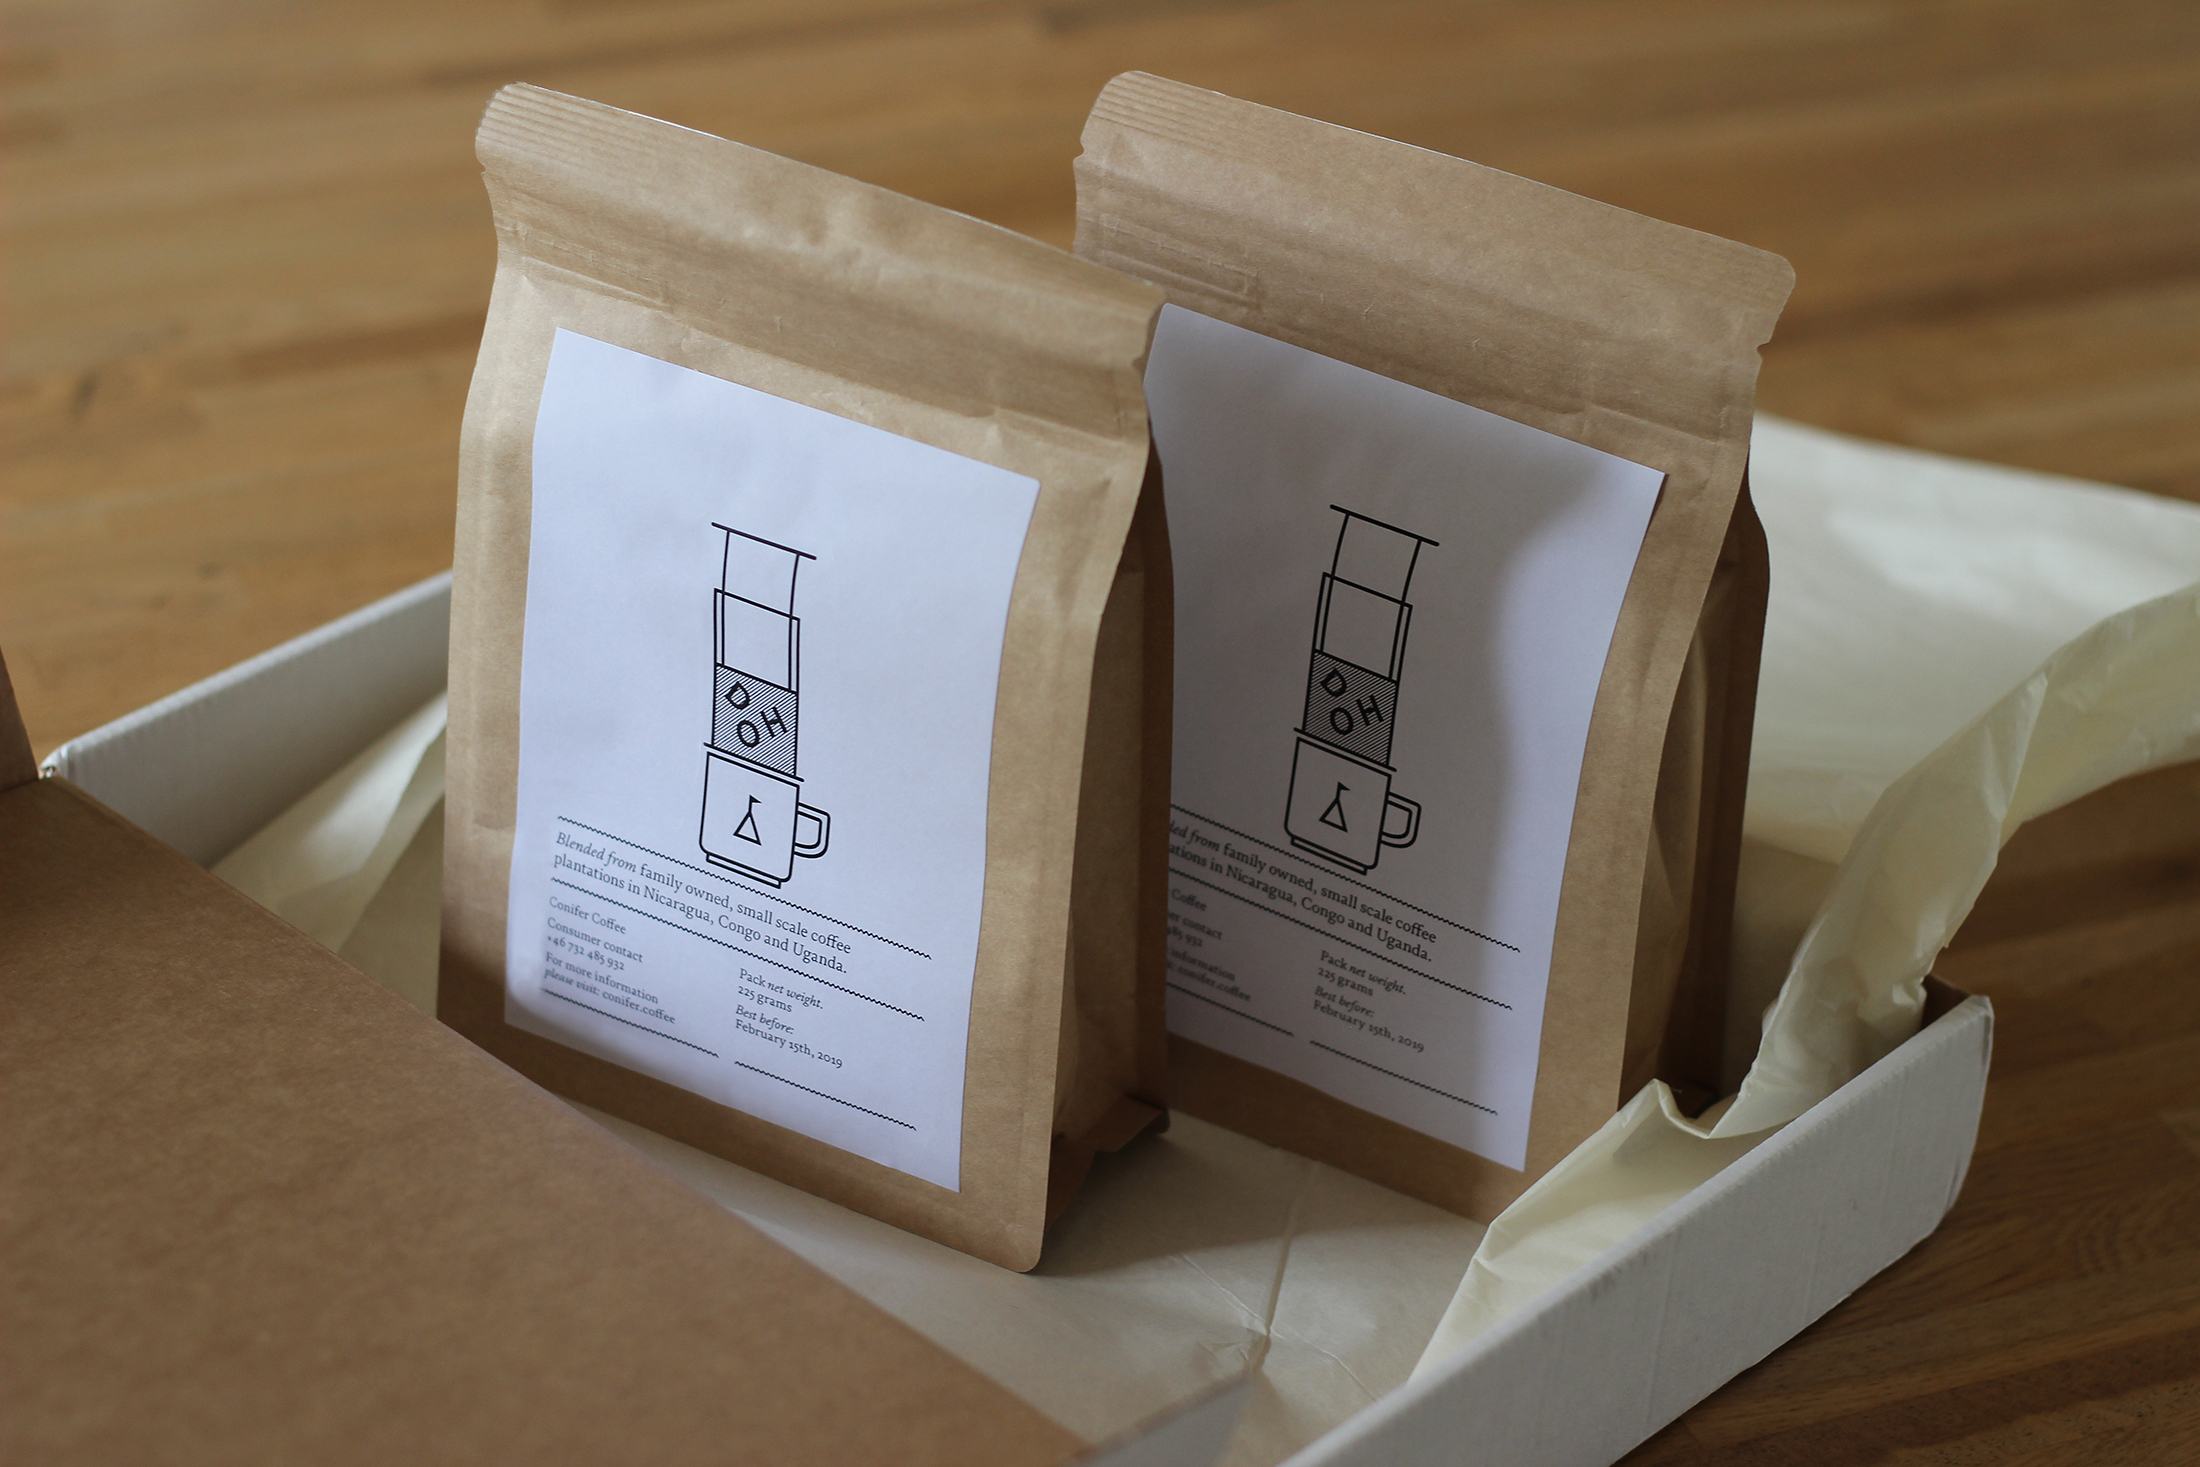 Conifer Coffee_packaging design_2_label detail_Alan Clarke-Symonds.jpg